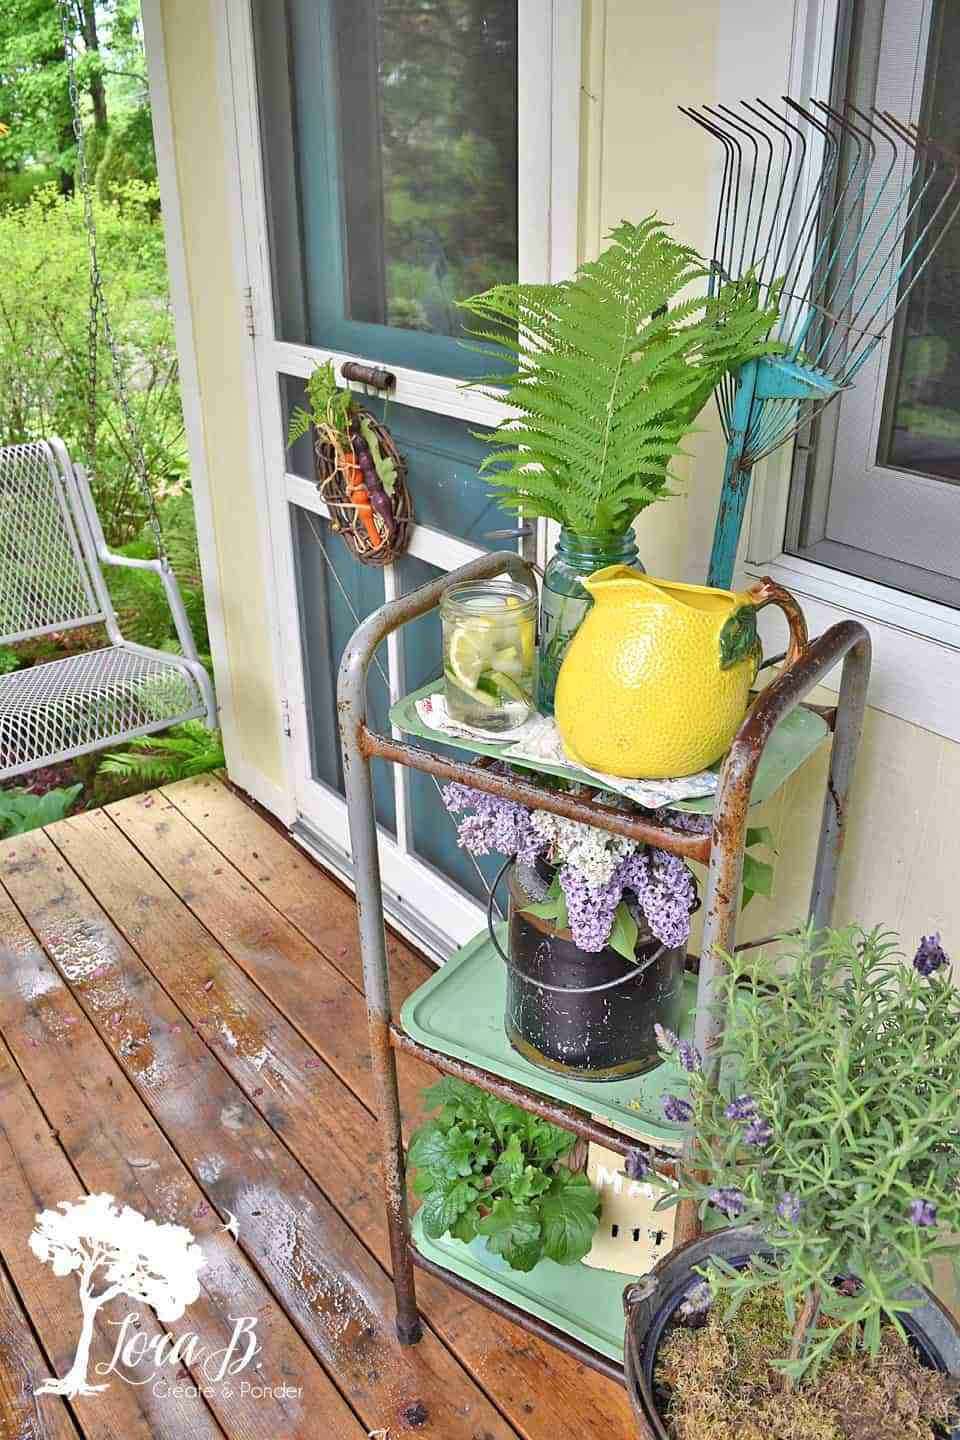 A vintage summer porch tour by Lora B, featured on DIY Salvaged Junk Projects 530 on Funky Junk!